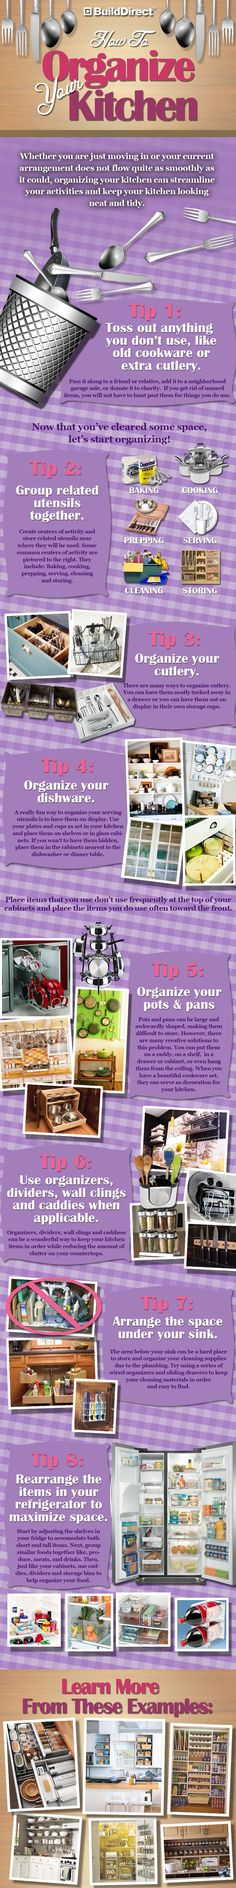 How To Organize Your Kitchen In 8 Steps